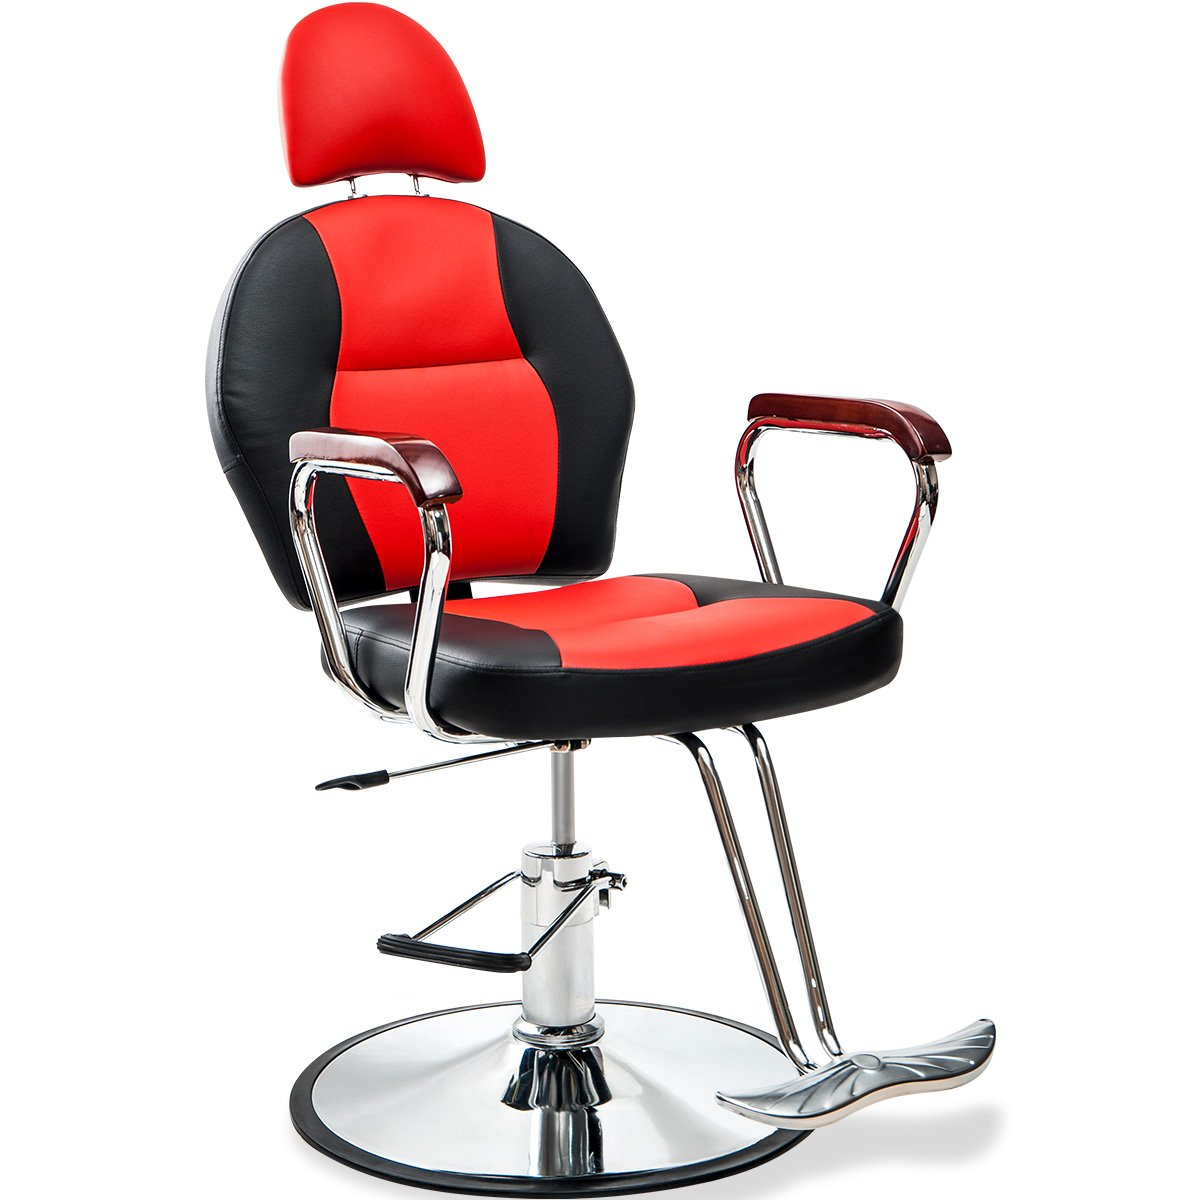 Merax Reclining Hydraulic Barber Chair Styling Salon Beauty Shampoo Spa Equipment (Black&Red)